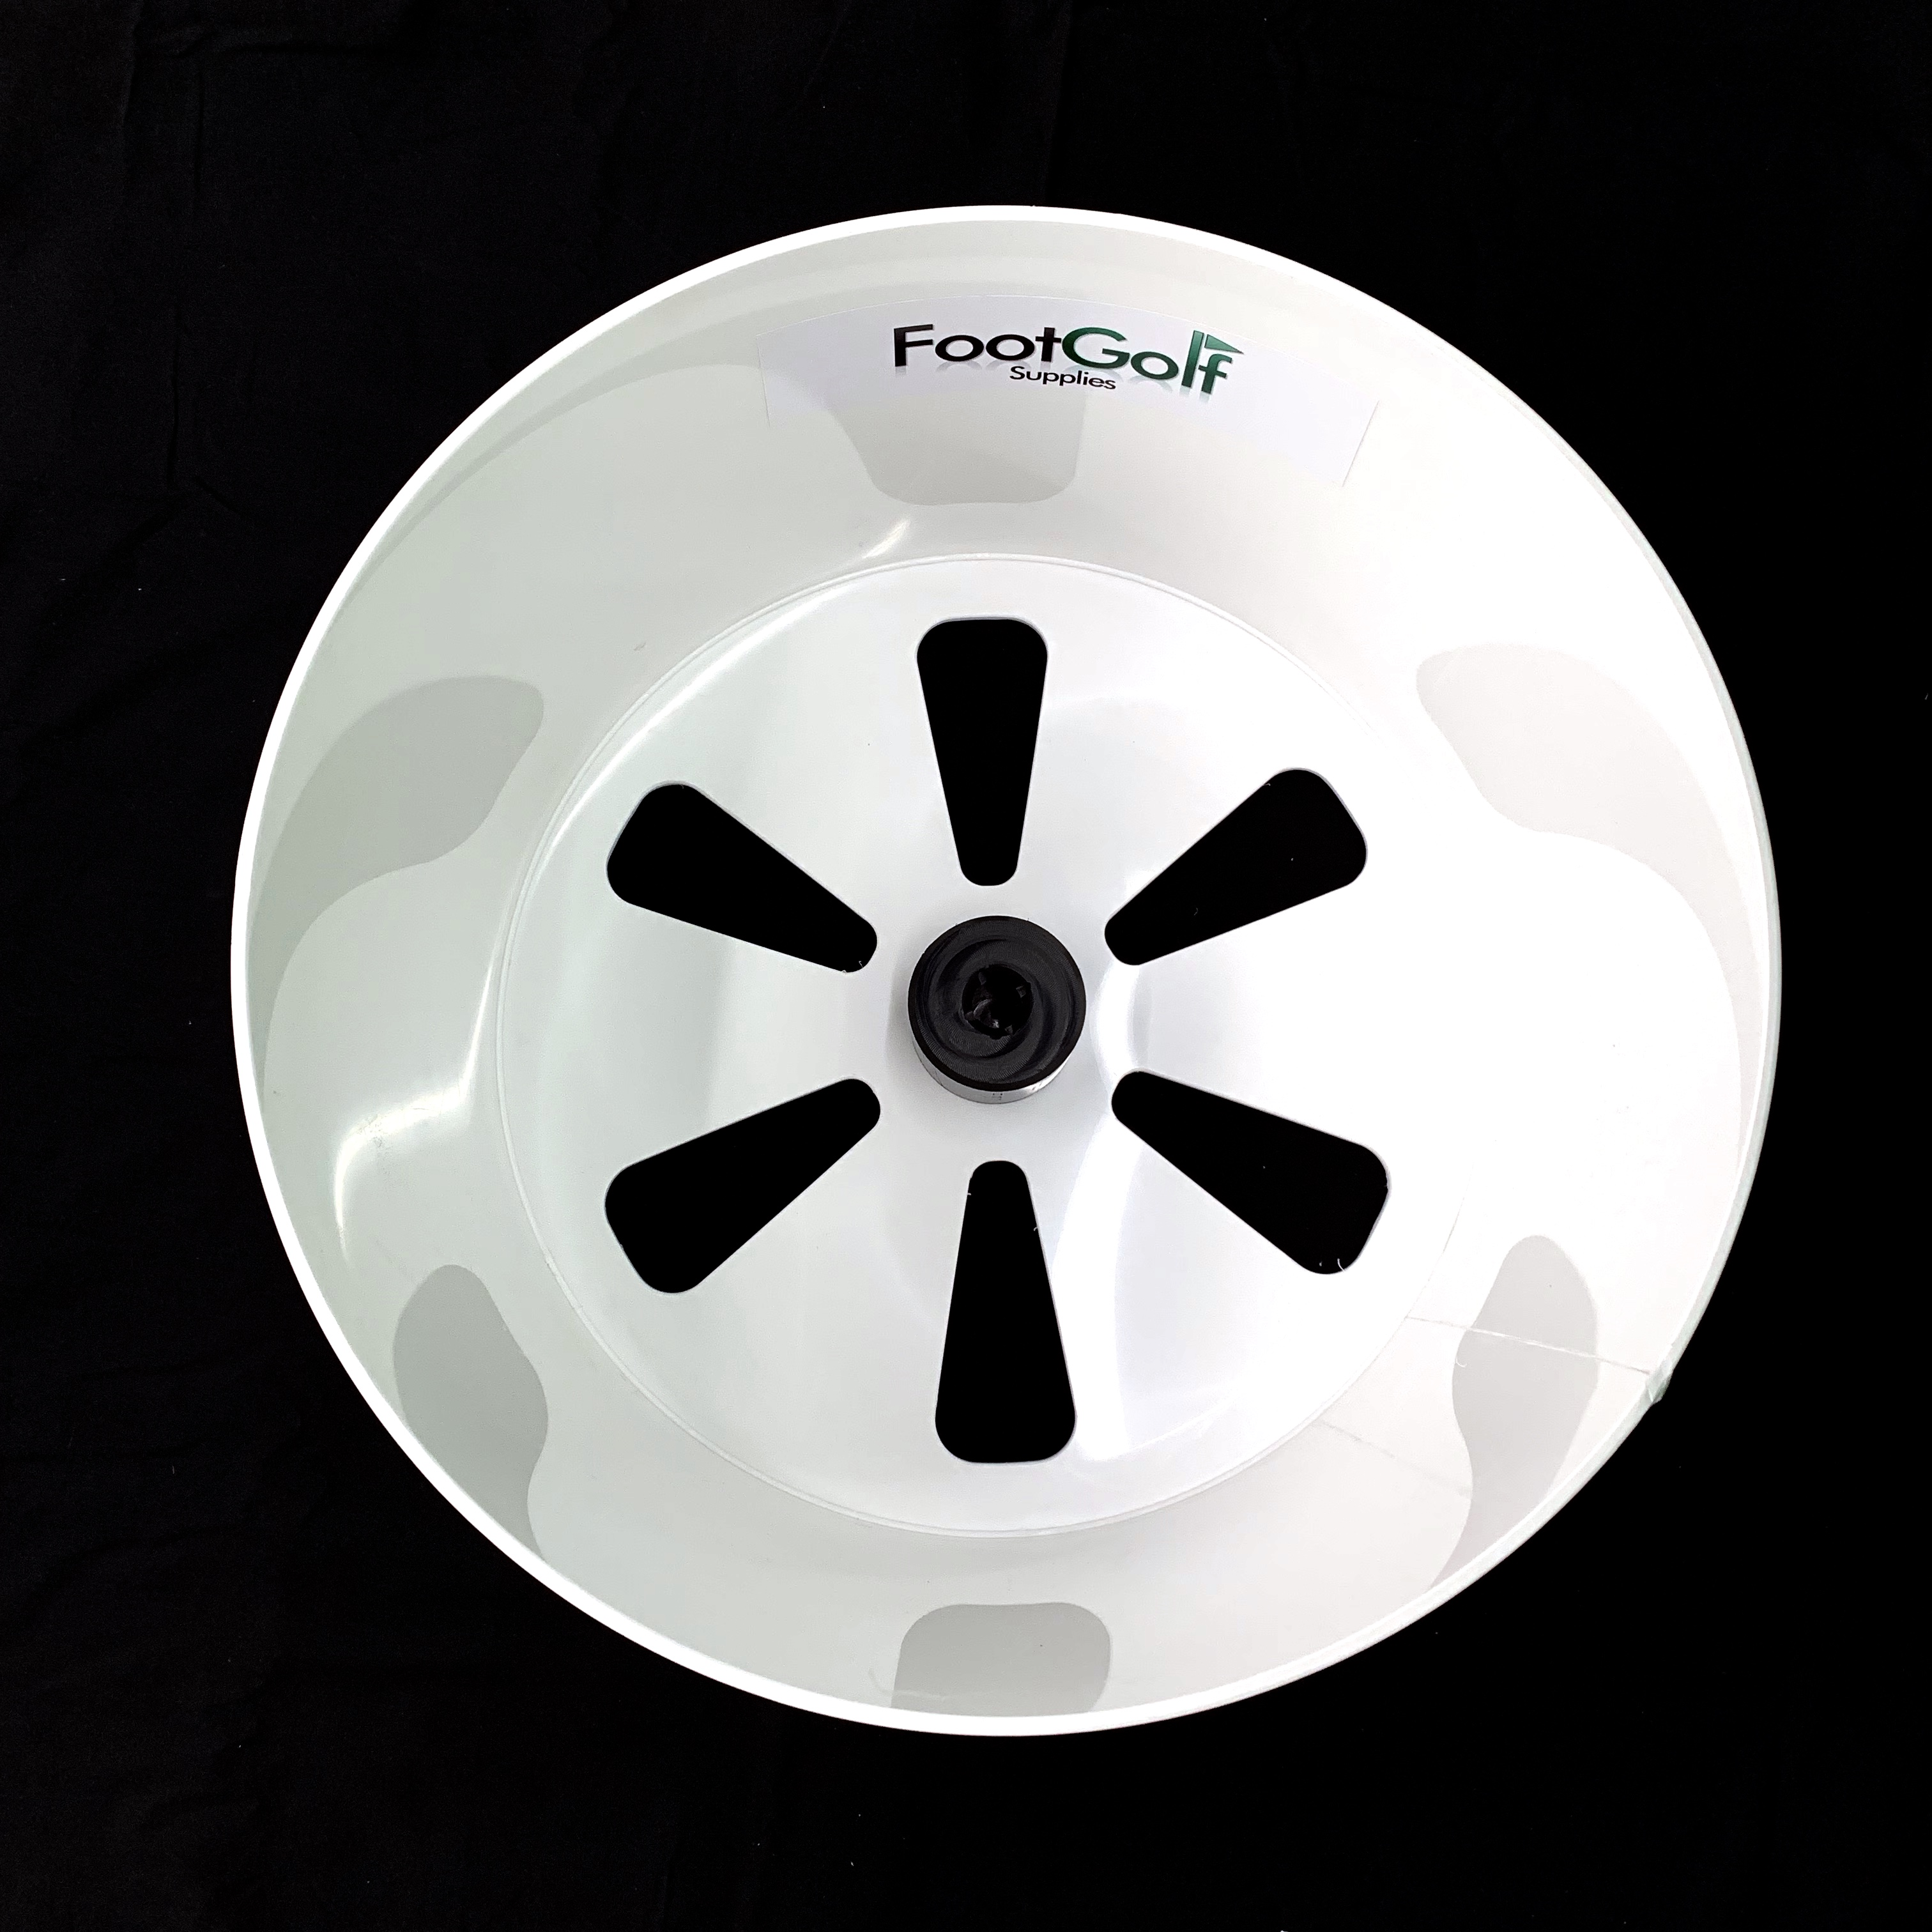 Footgolf Hole - Inside